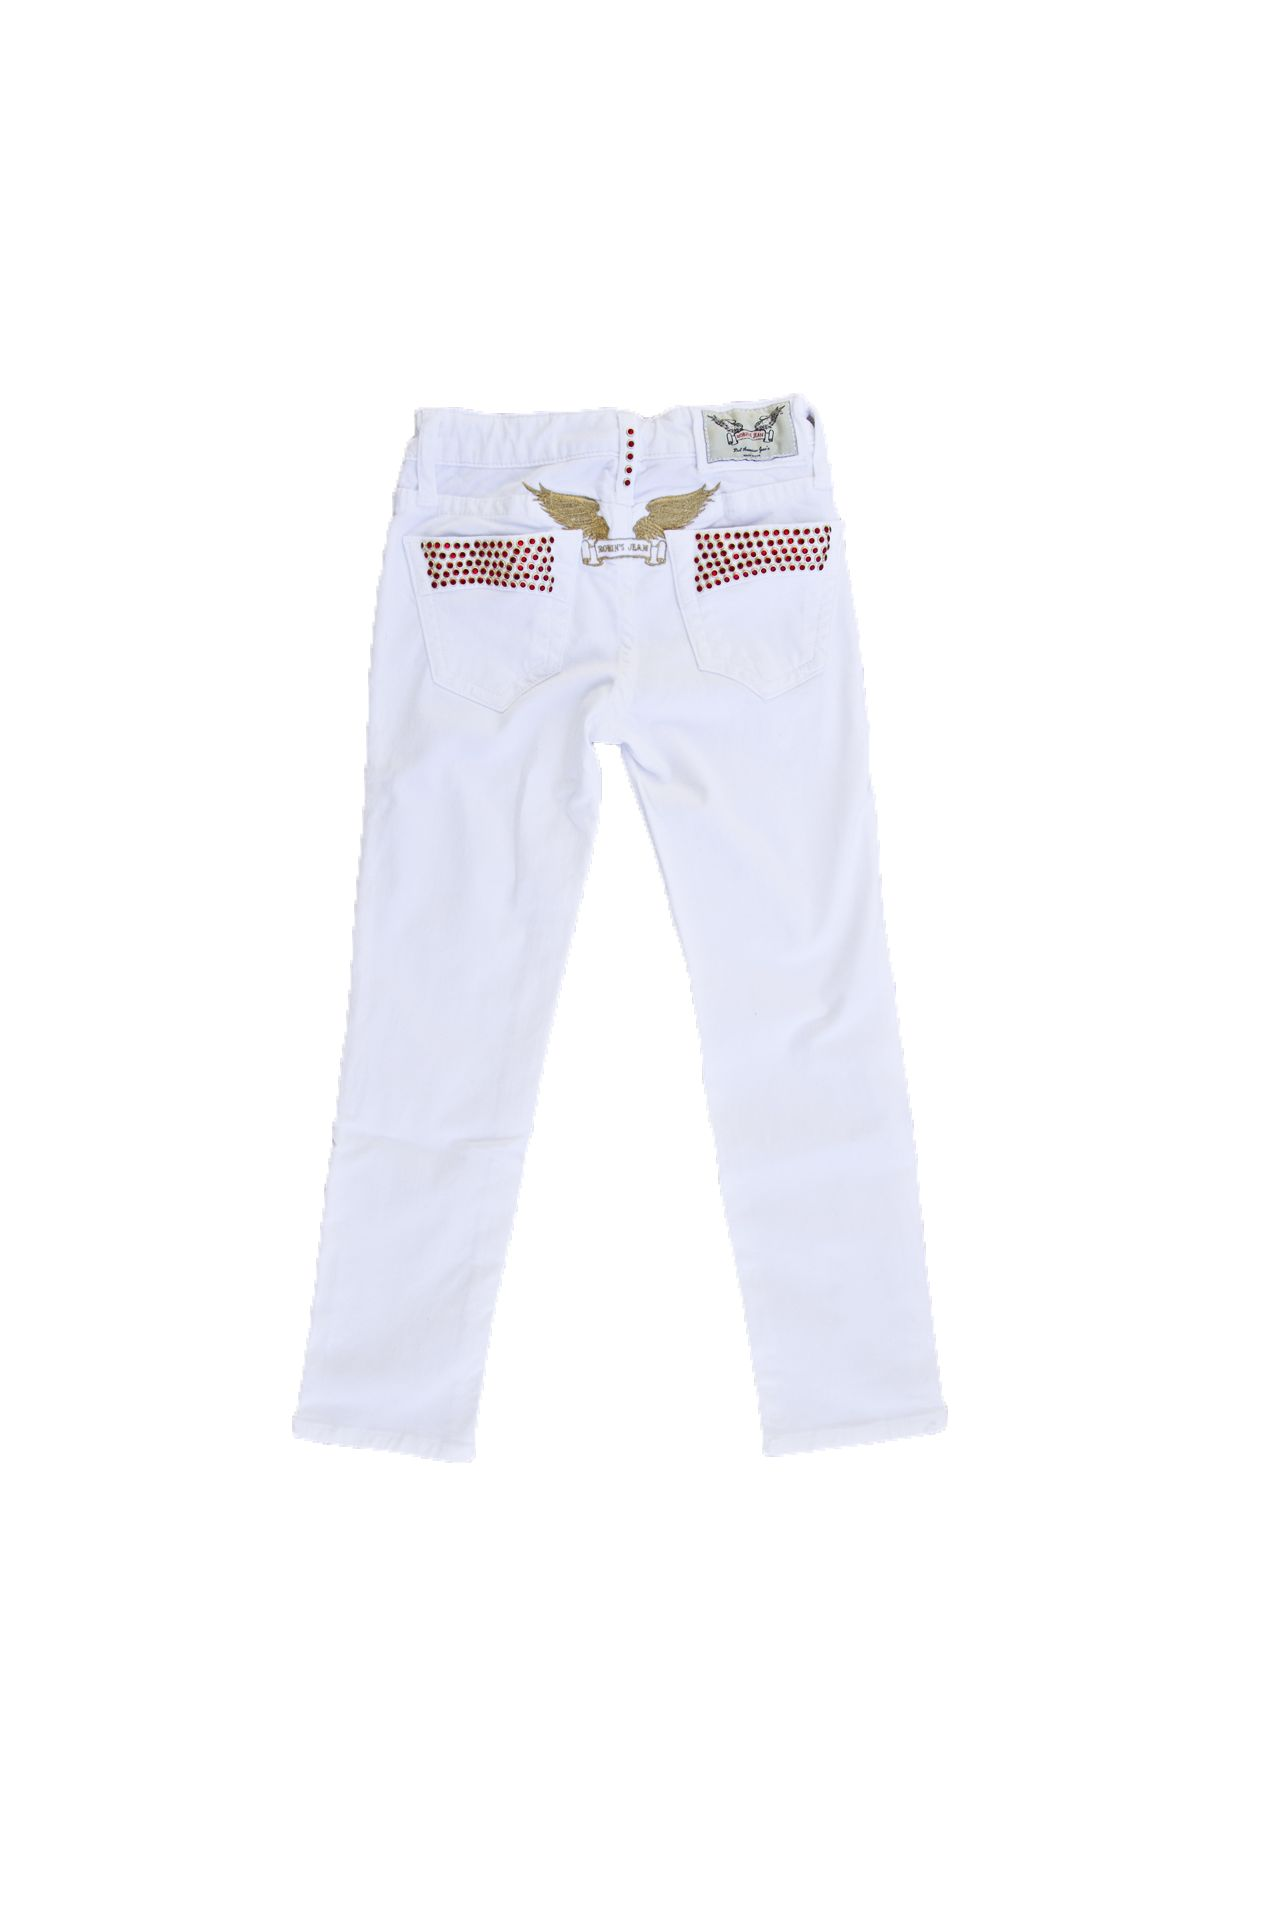 KID PANTS WHITE STUDDED